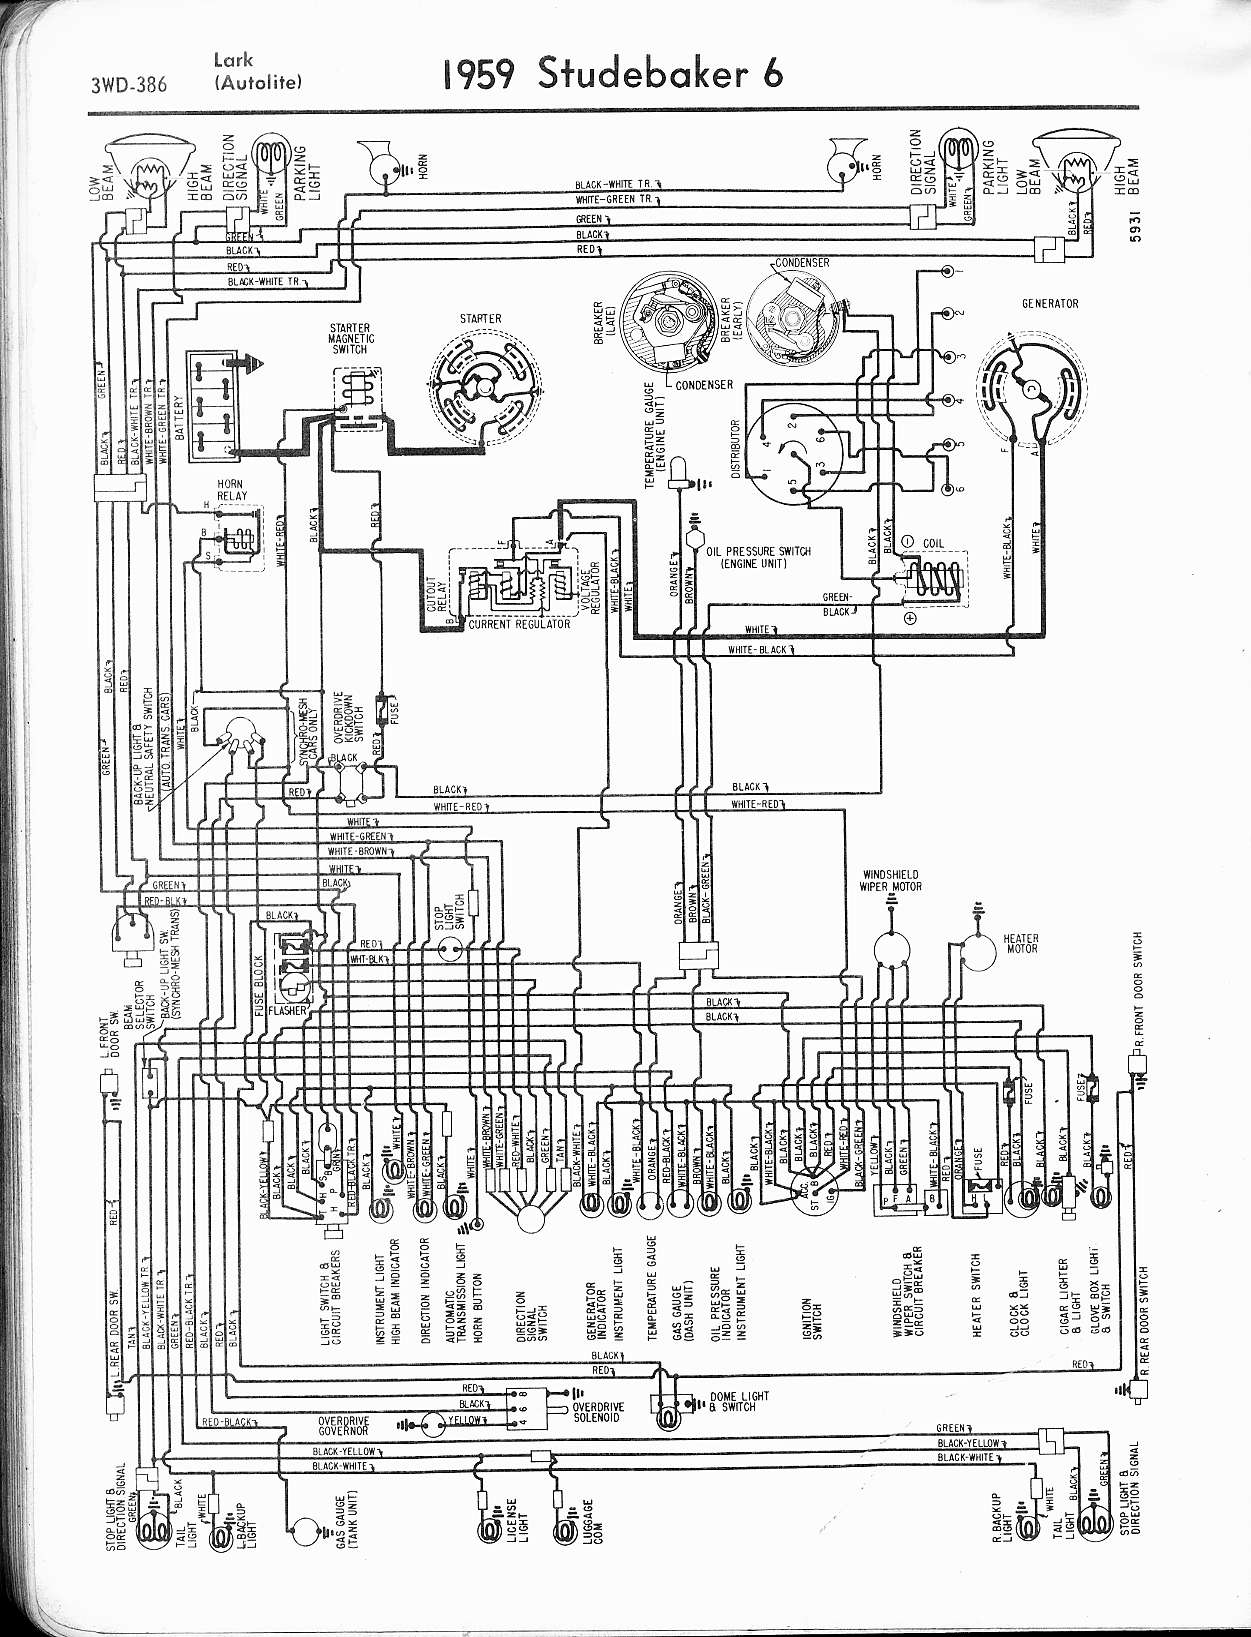 Car wiring diagrams wiring diagrams studebaker wiring diagrams the old car manual project rh oldcarmanualproject com car wiring diagram symbols car wiring diagram car jeep 1999 trailer asfbconference2016 Image collections